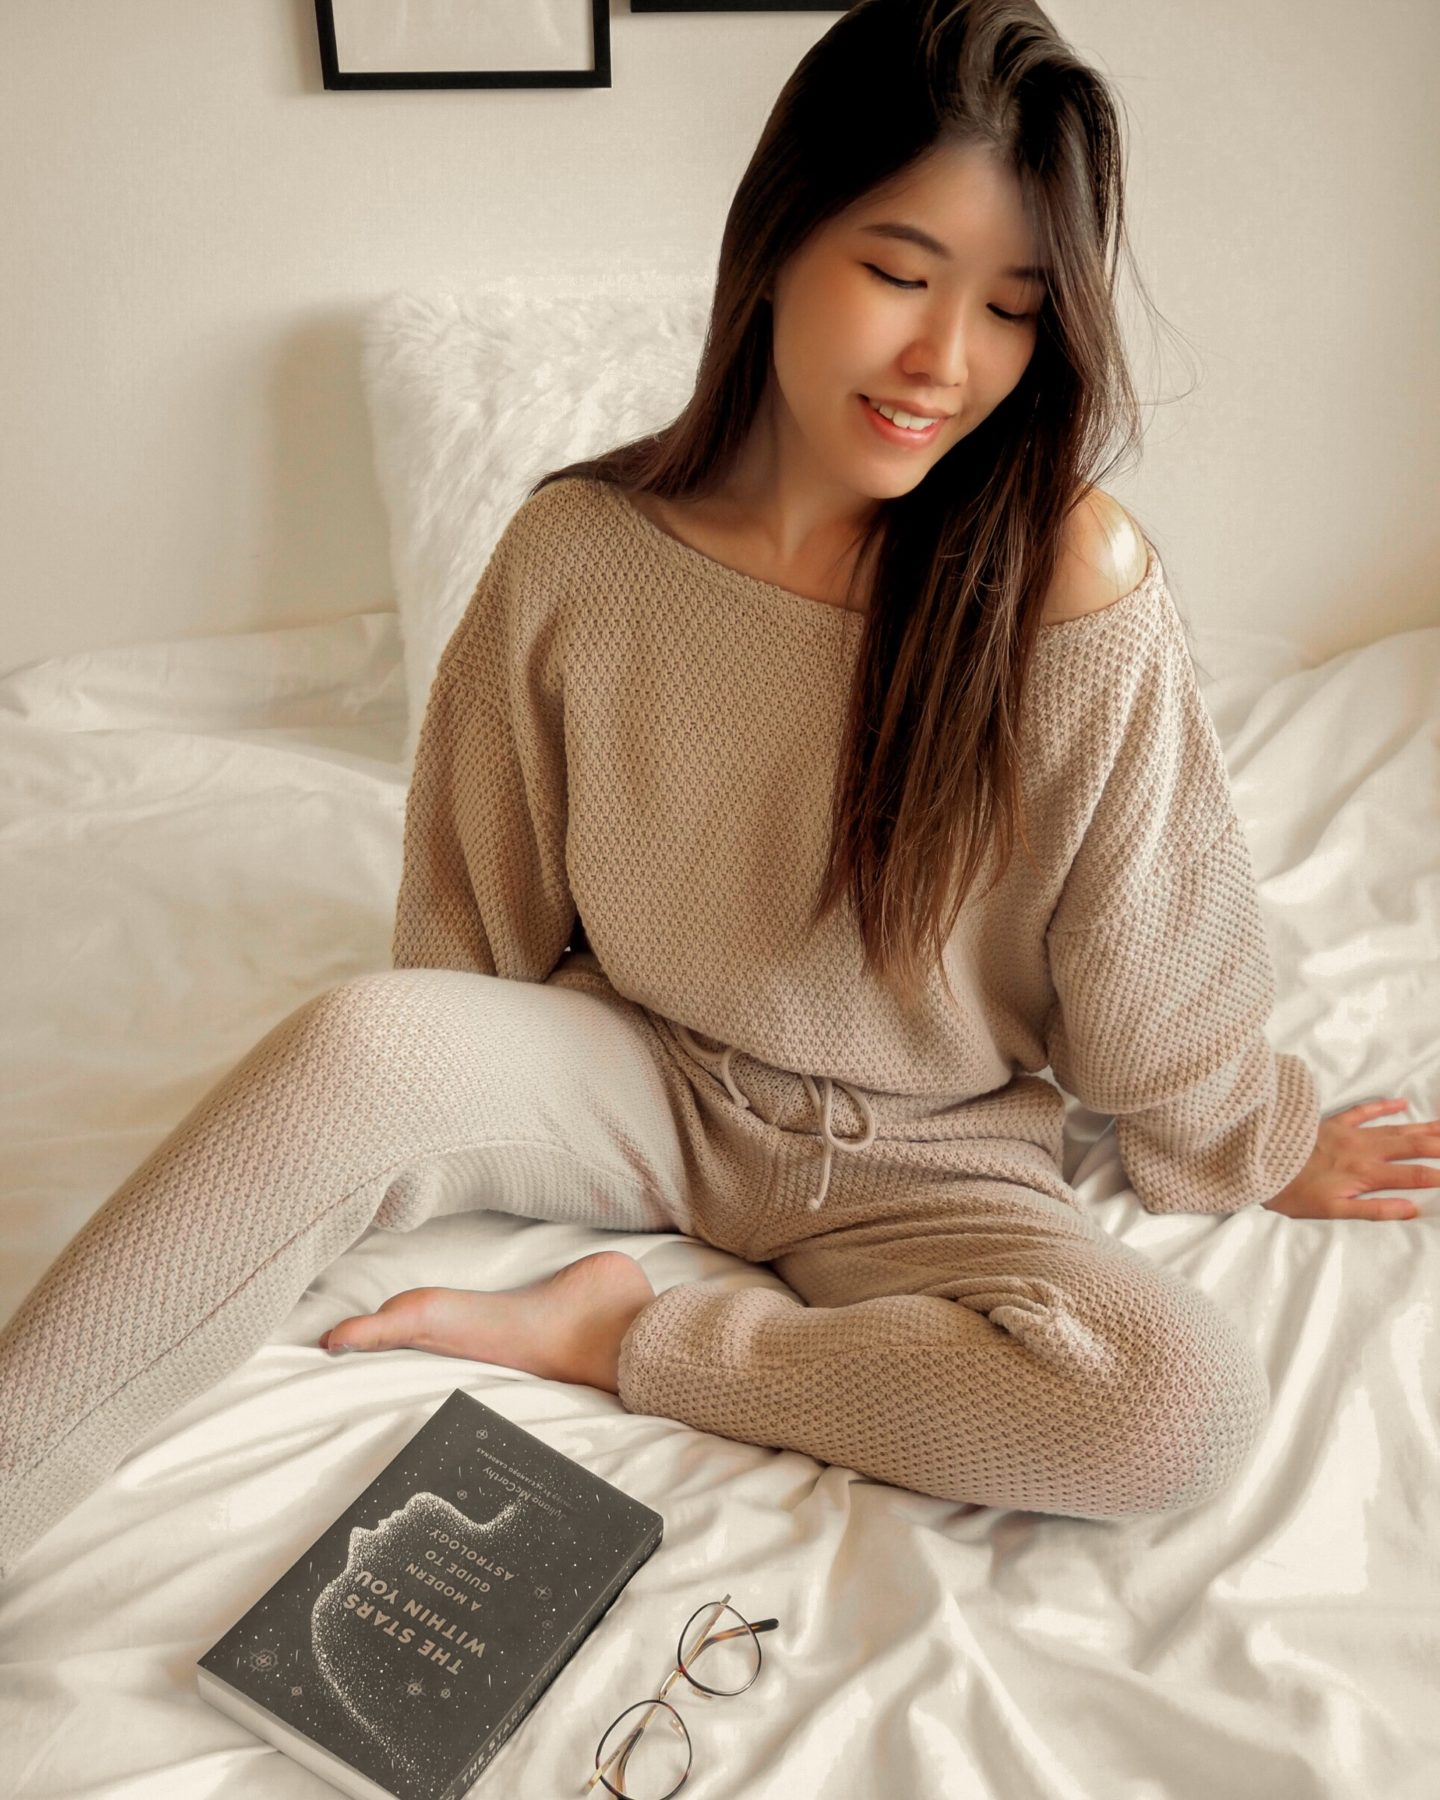 sitting on bed